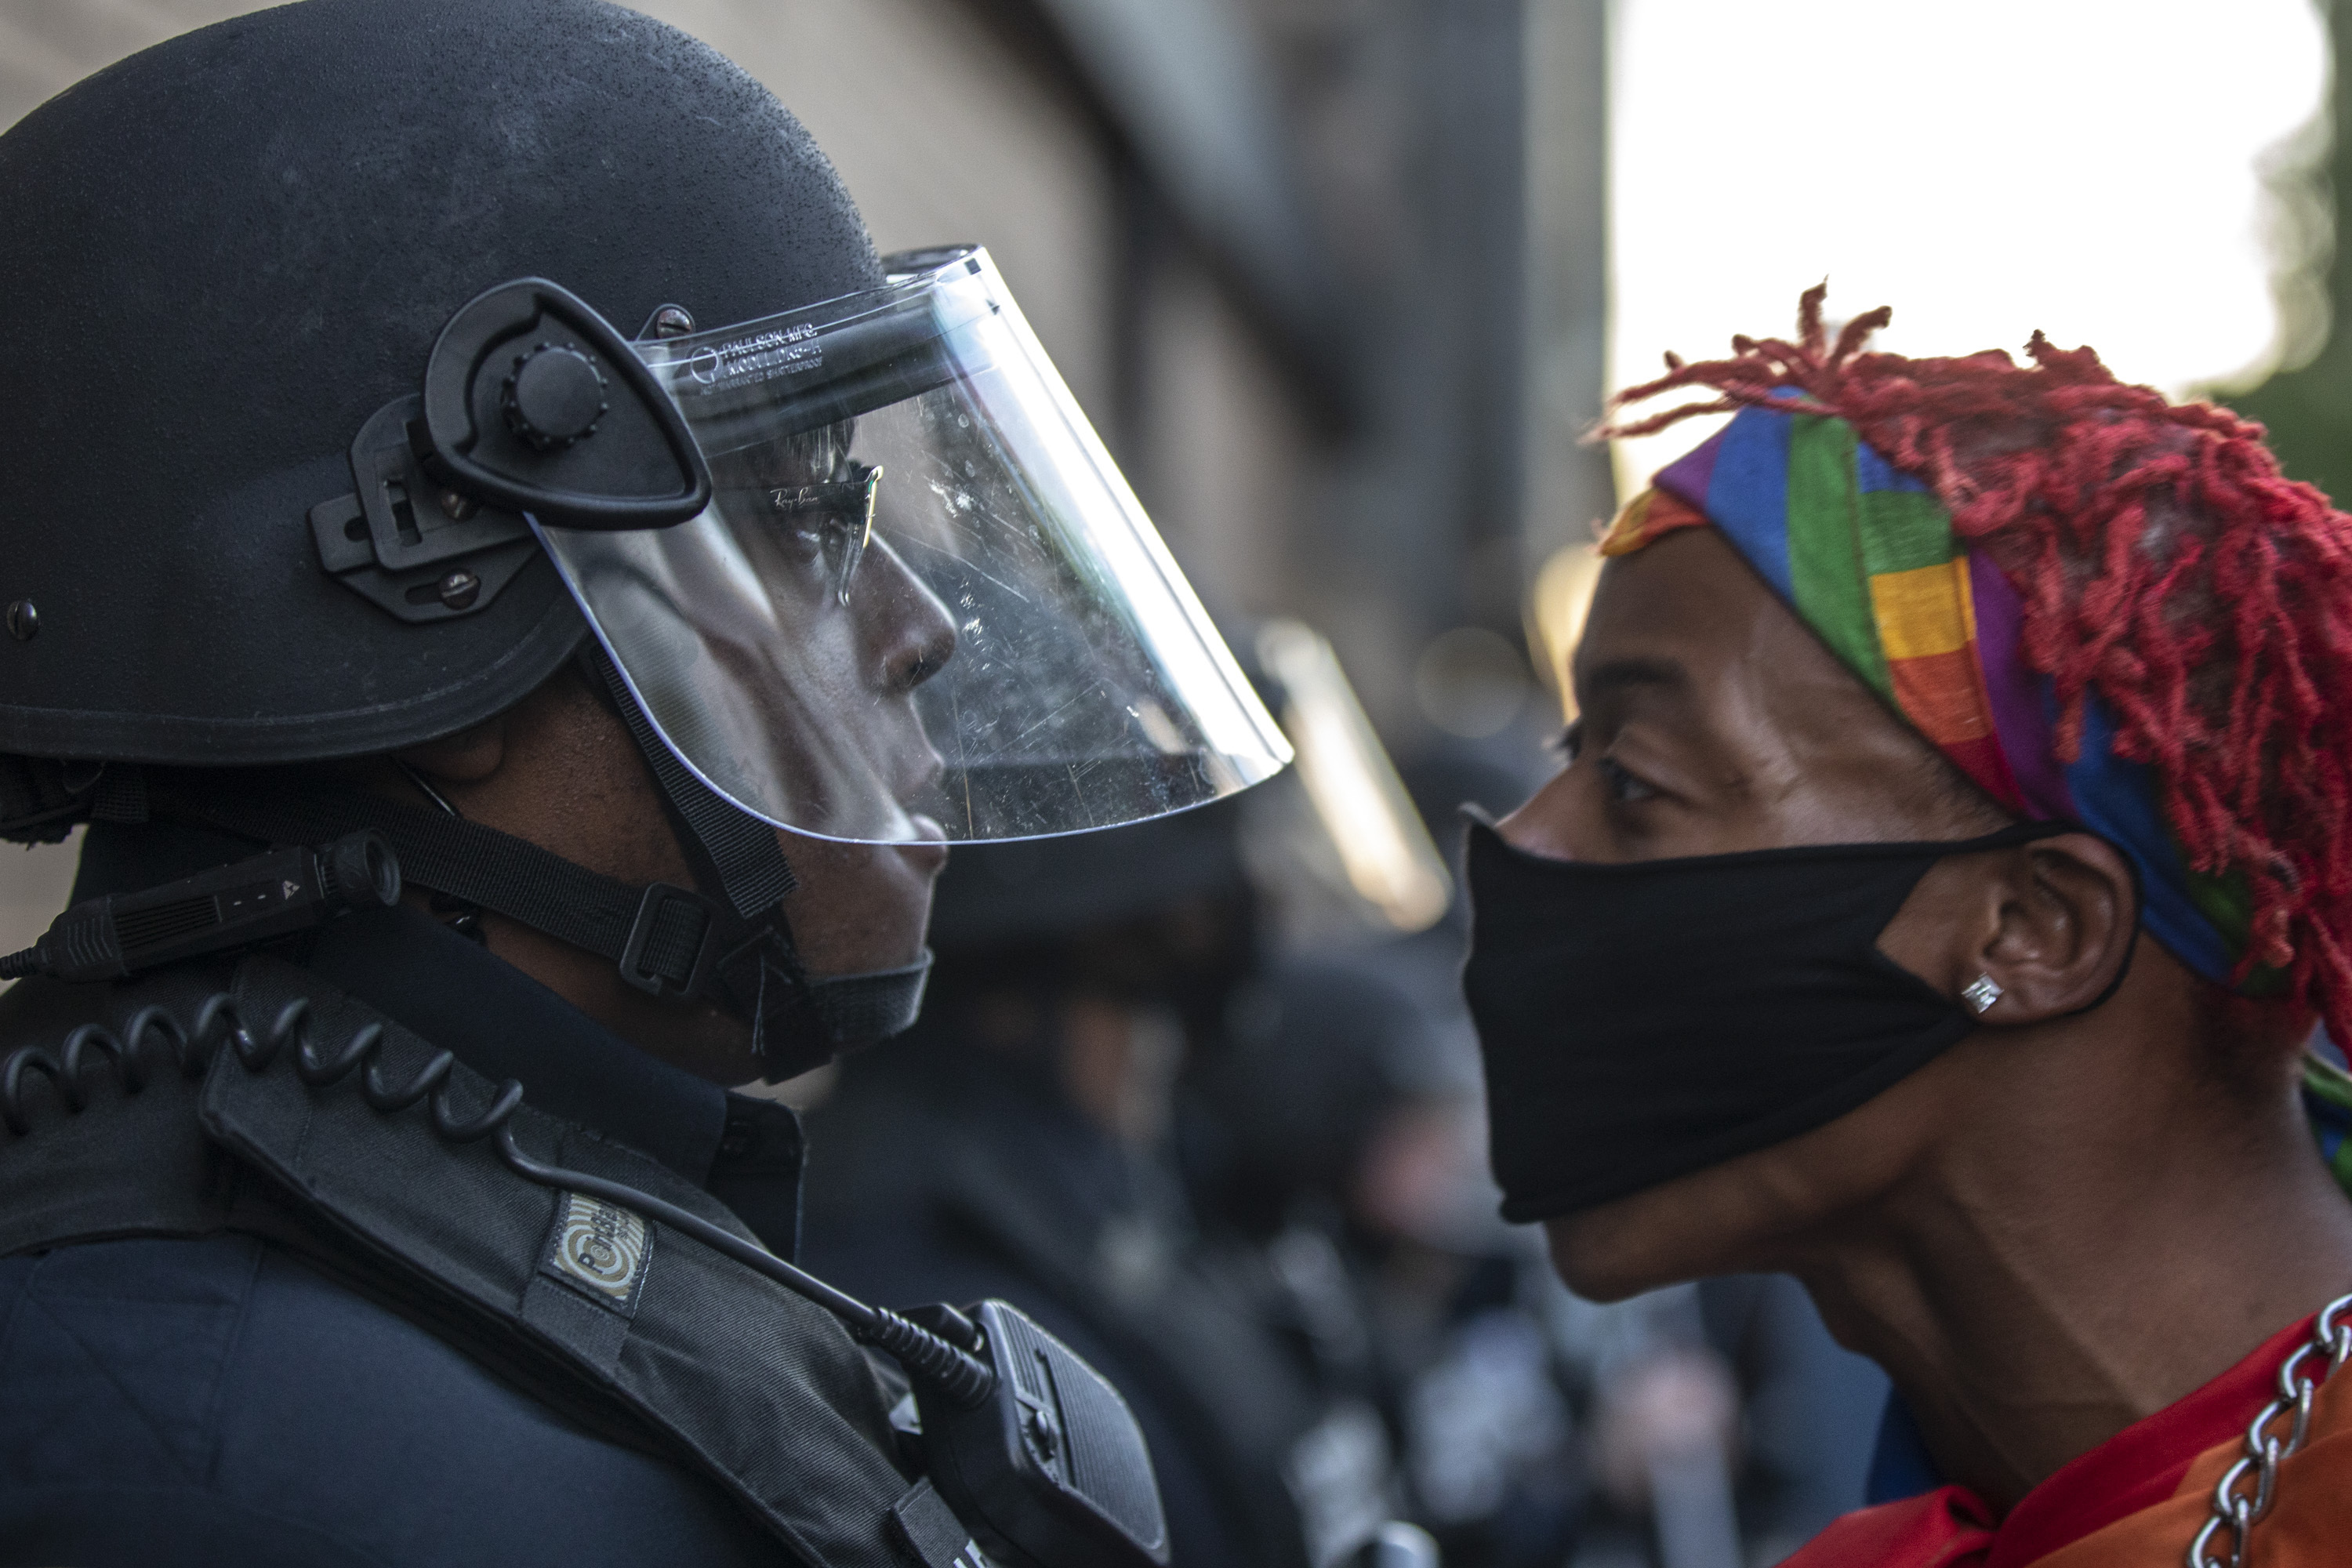 A protester confronts police during a rally in downtown Lexington, Ky., against the deaths of George Floyd and Breonna Taylor on Sunday, May 31, 2020. (Ryan C. Hermens/Lexington Herald-Leader via AP)